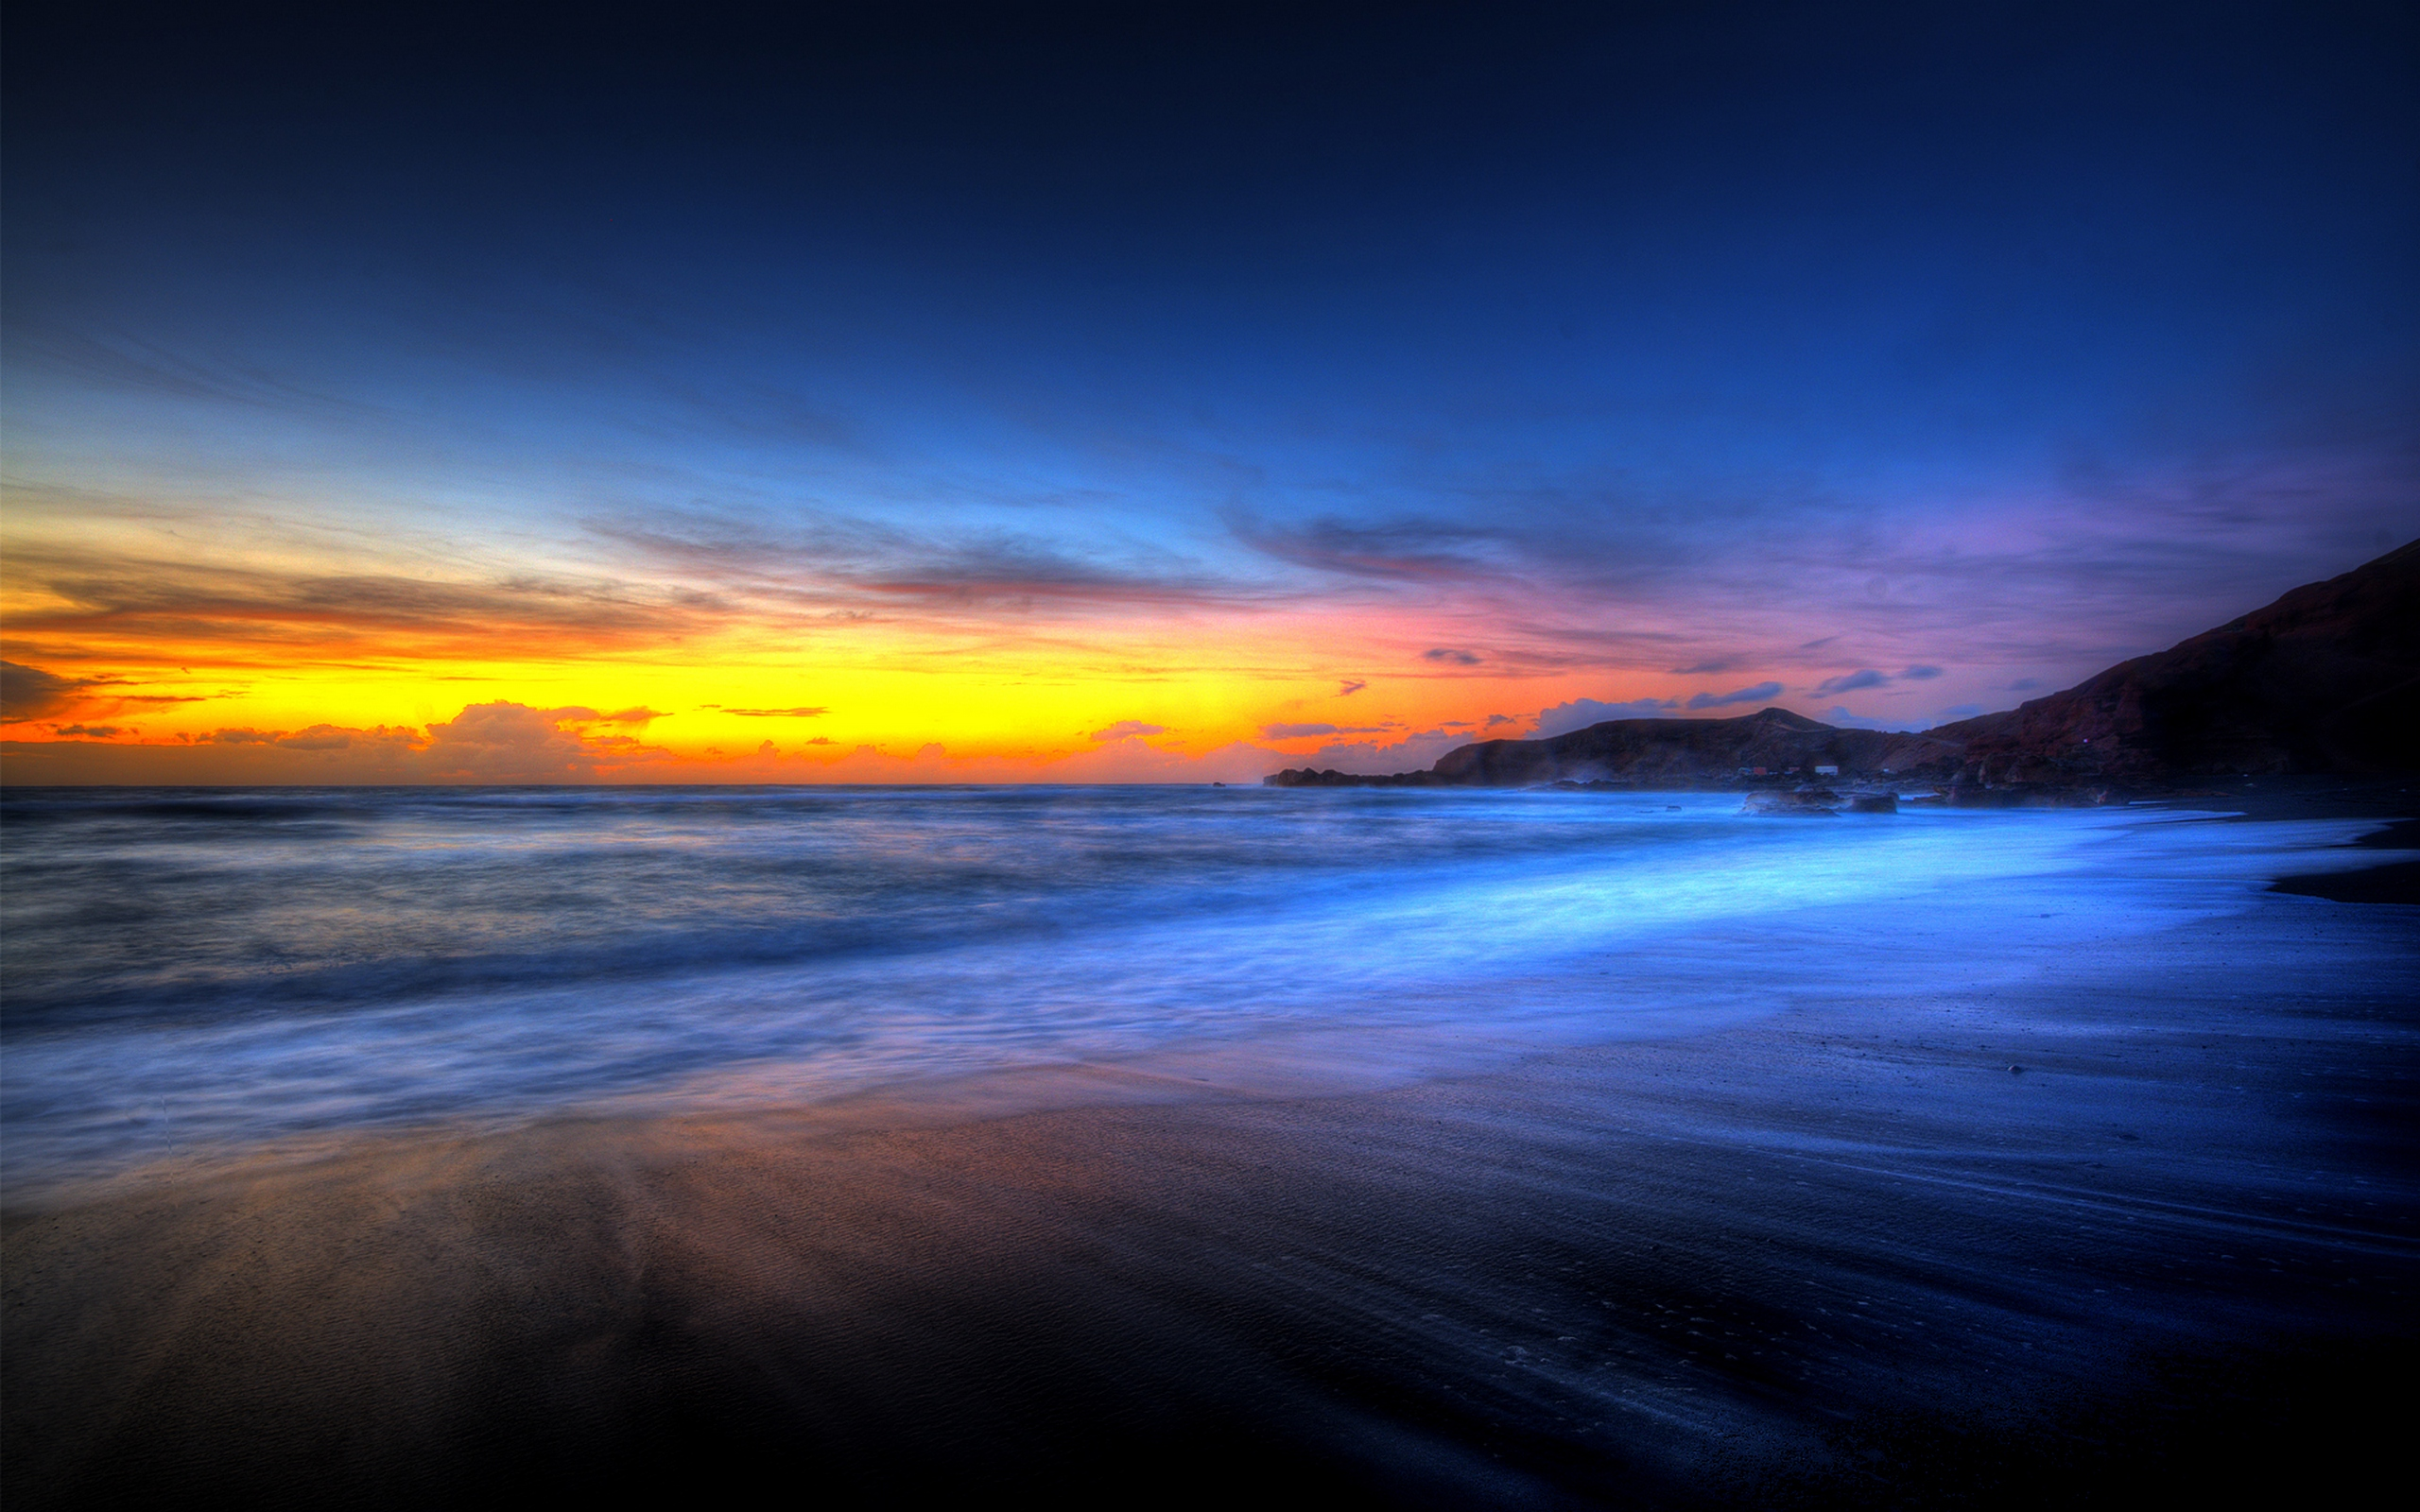 beautiful sunset wallpaper 749251 beautiful sunset 749238 beautiful 2560x1600